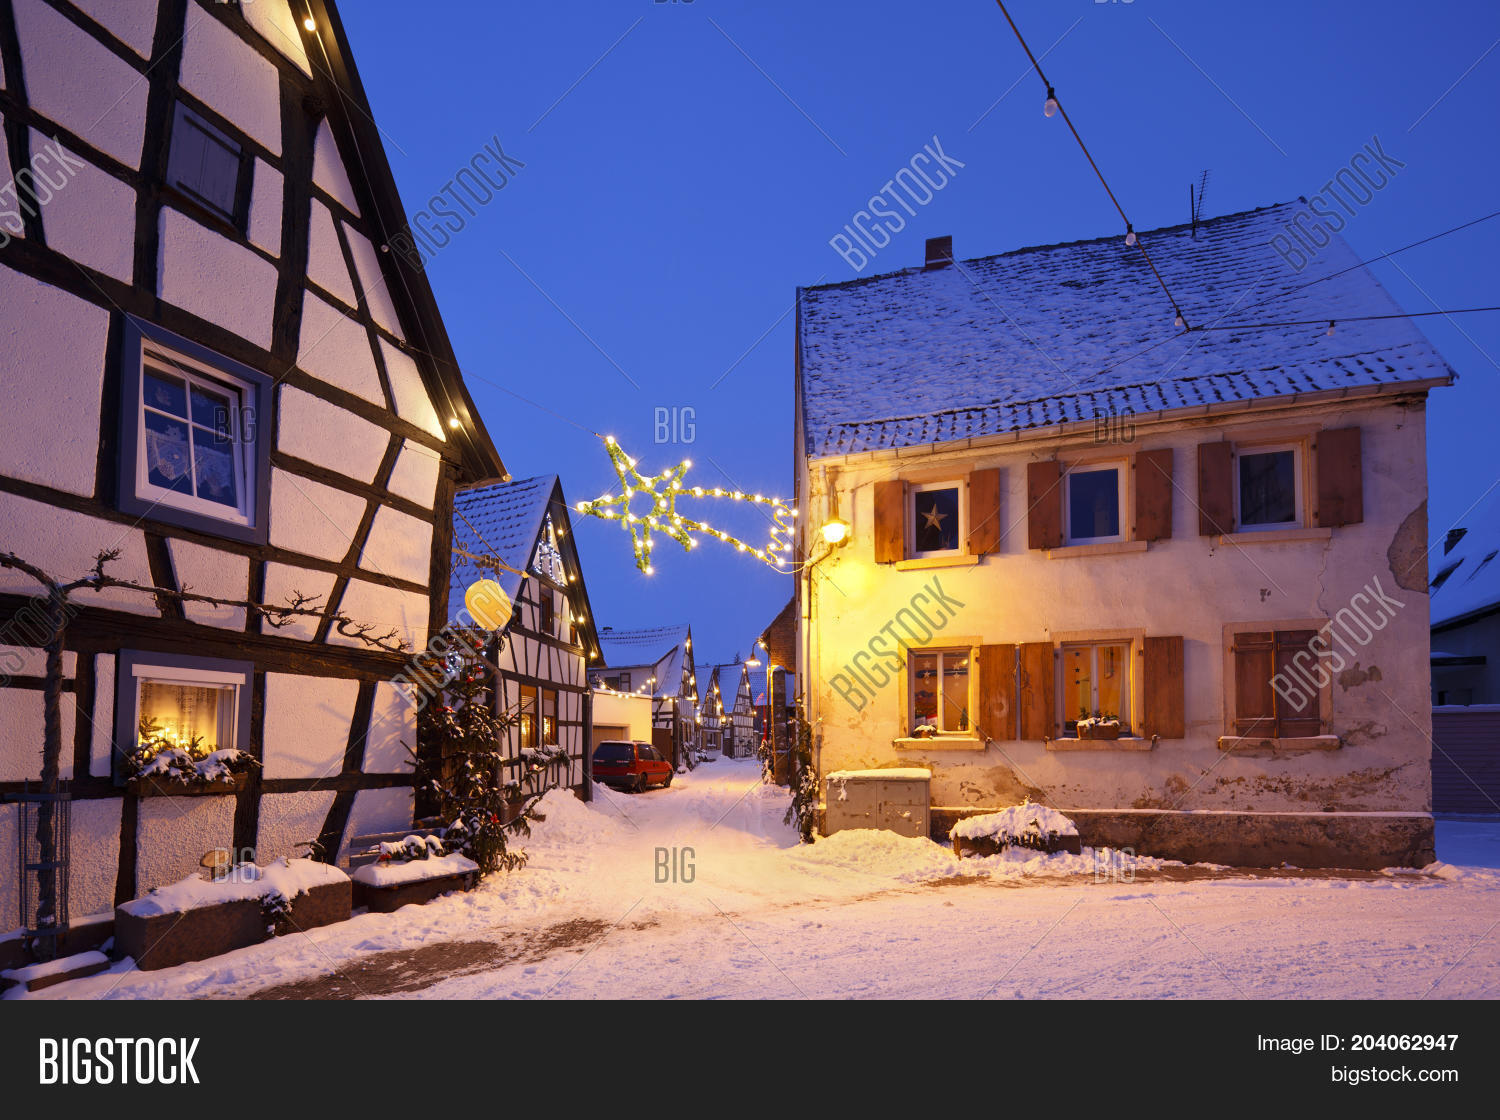 Christmas Village In Germany.Christmas Village Image Photo Free Trial Bigstock